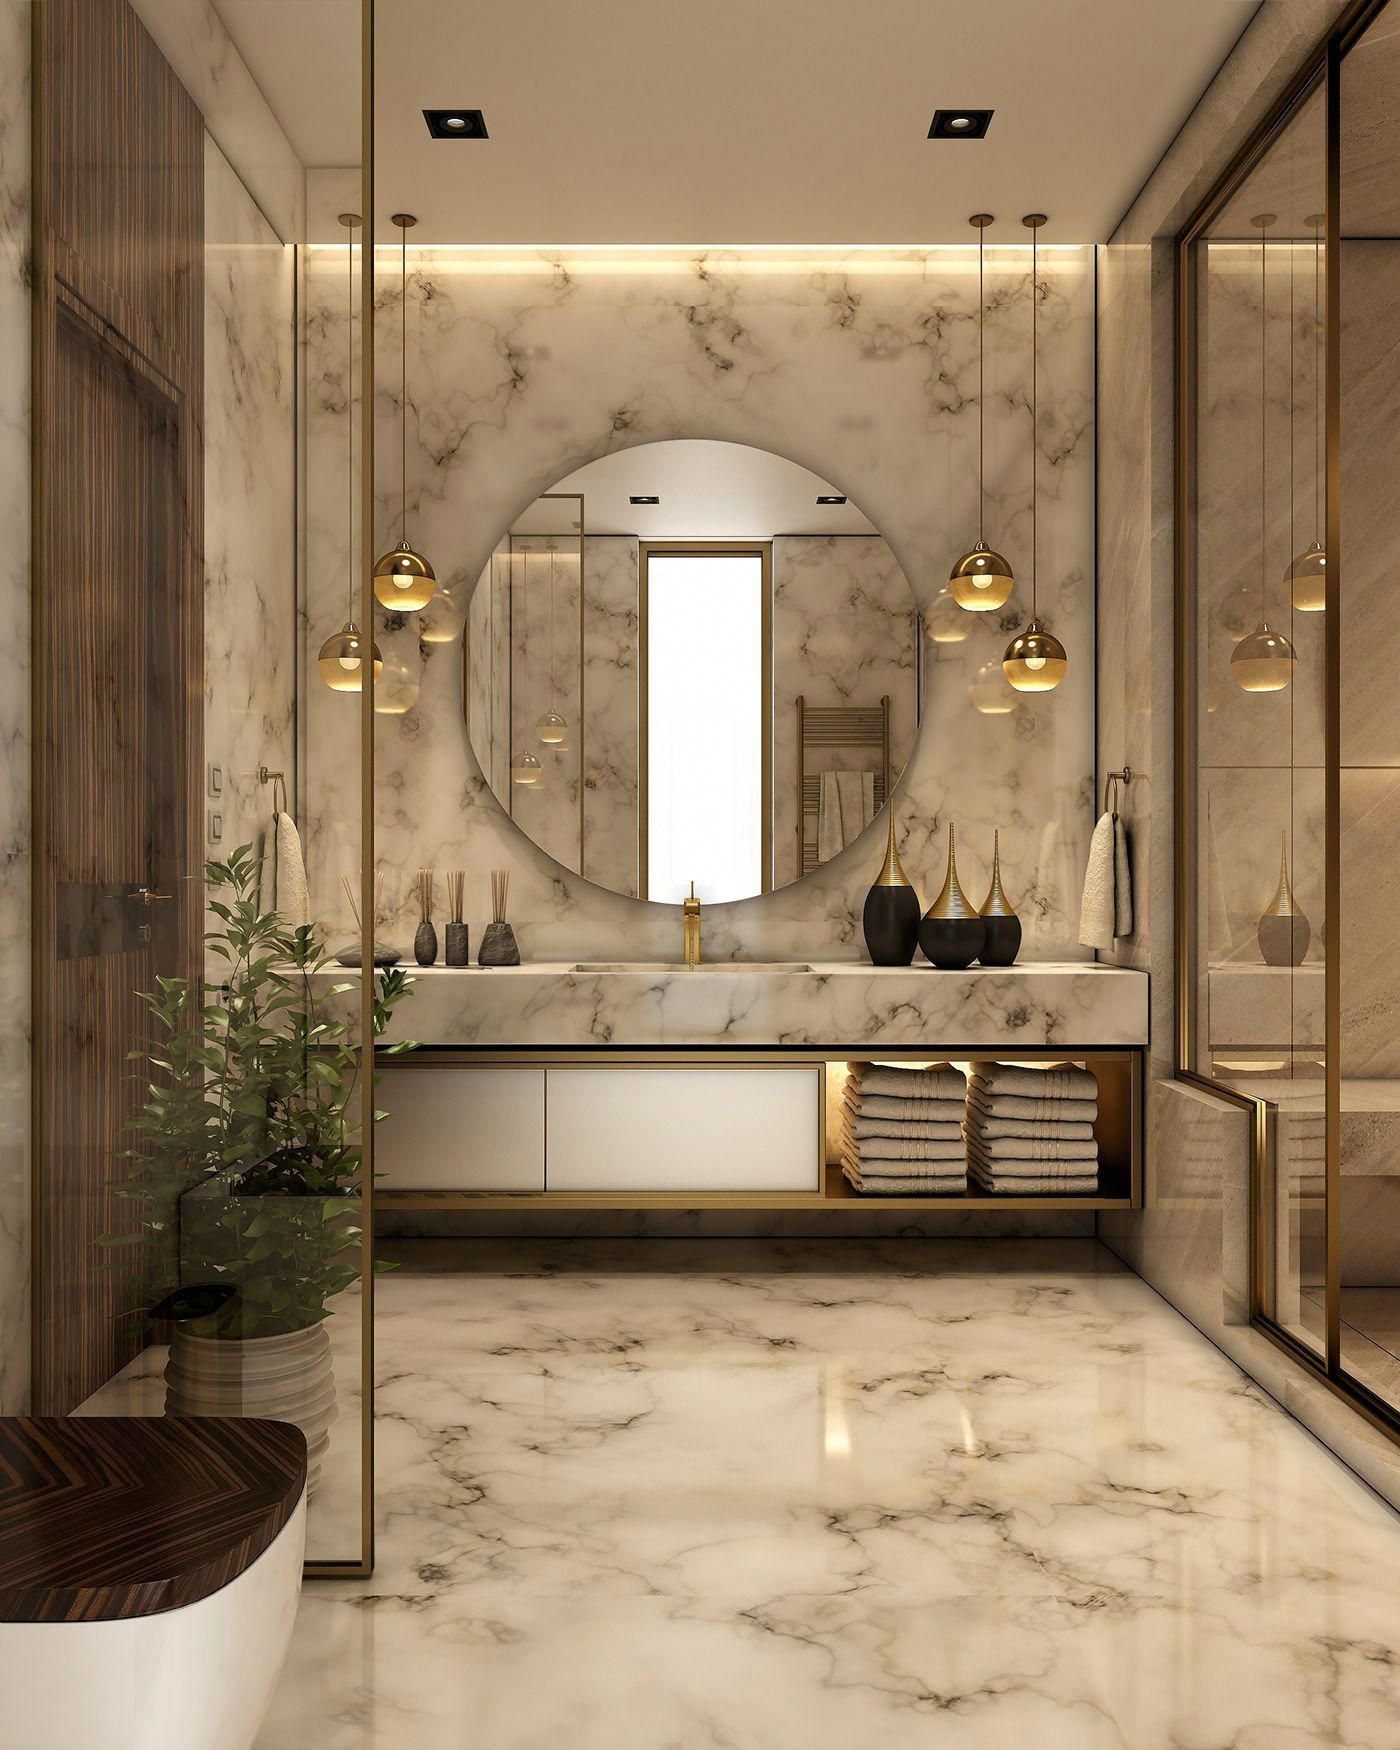 How Much Does A Bathroom Renovation Cost In 2020 Bathroom Interior Bathroom Interior Design